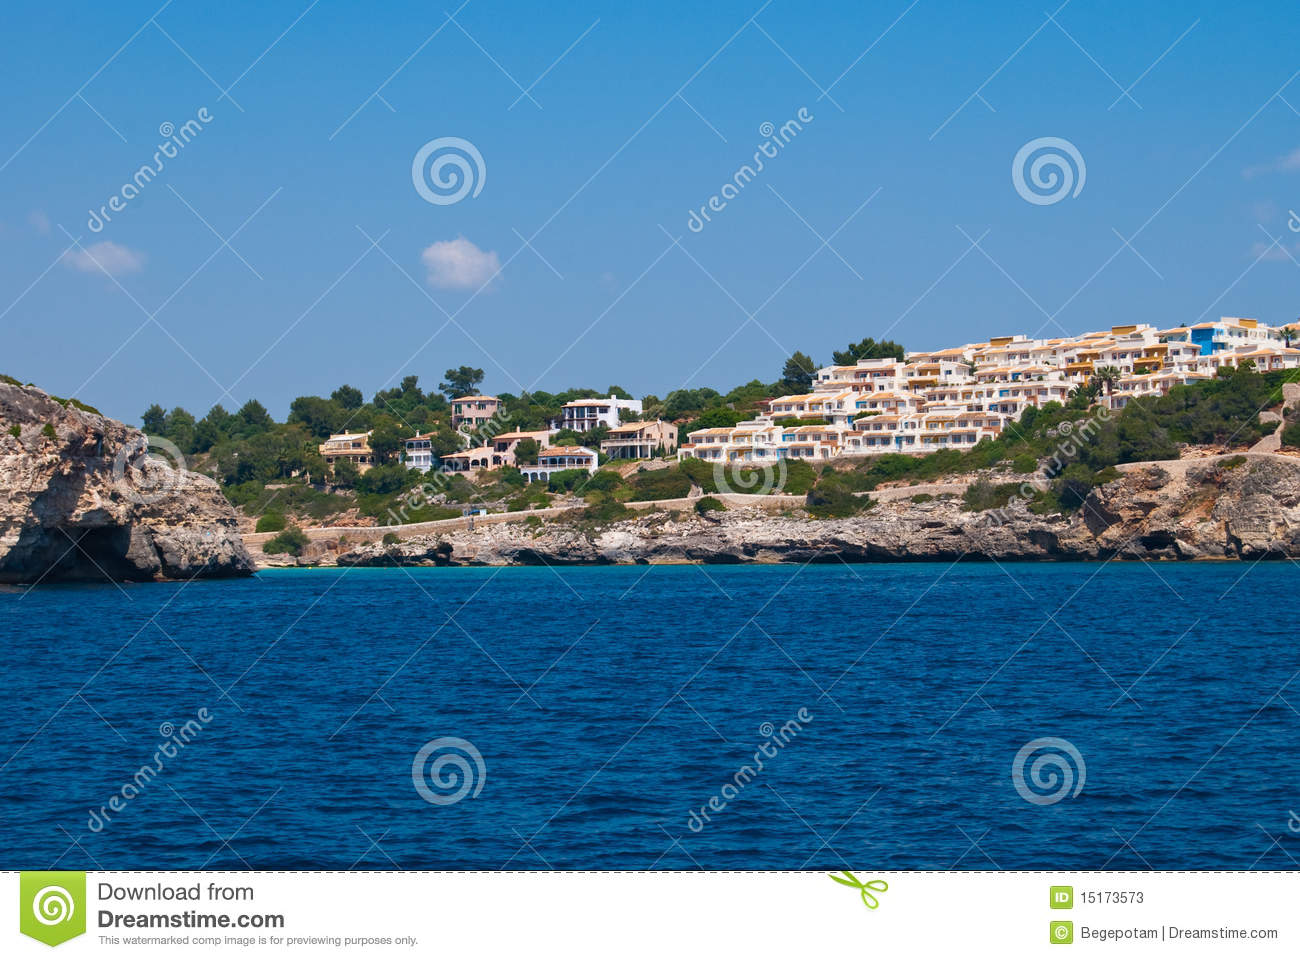 Cala Romantica Spain  City pictures : Cala Romantica bay view from the open sea, Majorca island, Spain.